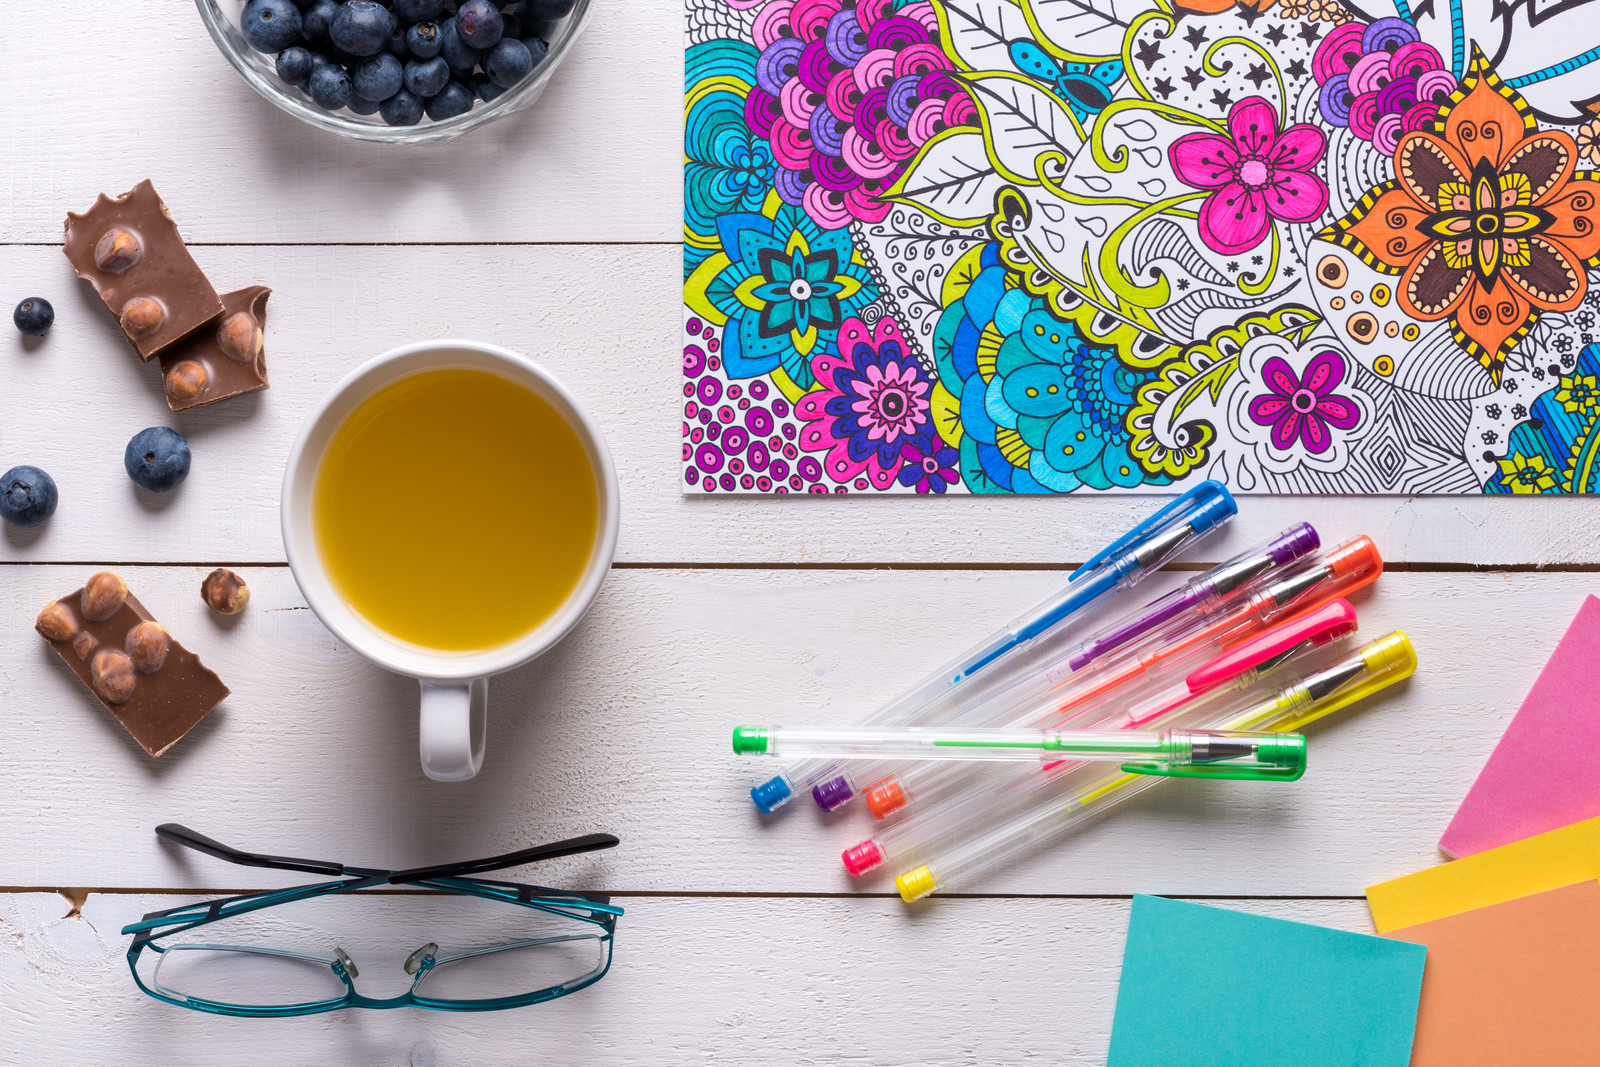 5 Benefits for Why Every Senior Should Start Coloring- Adult coloring book page filled with flowers partially colored in  with gel pens, candy, blueberries, tea and reading glasses sitting on the table nearby